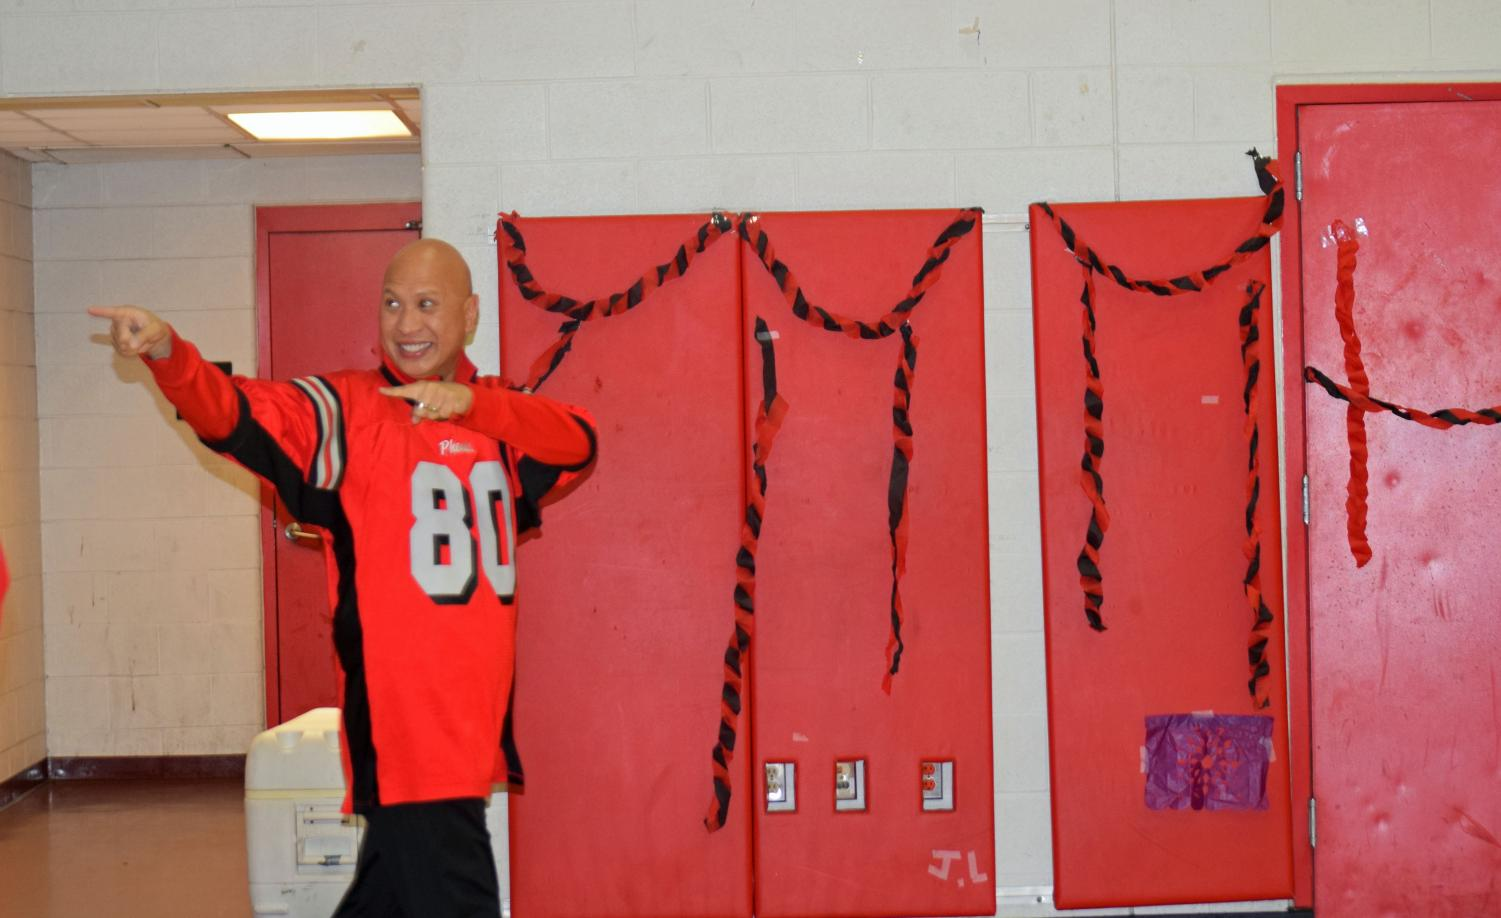 Mr. Wipachit at the 2018 Pep Rally.